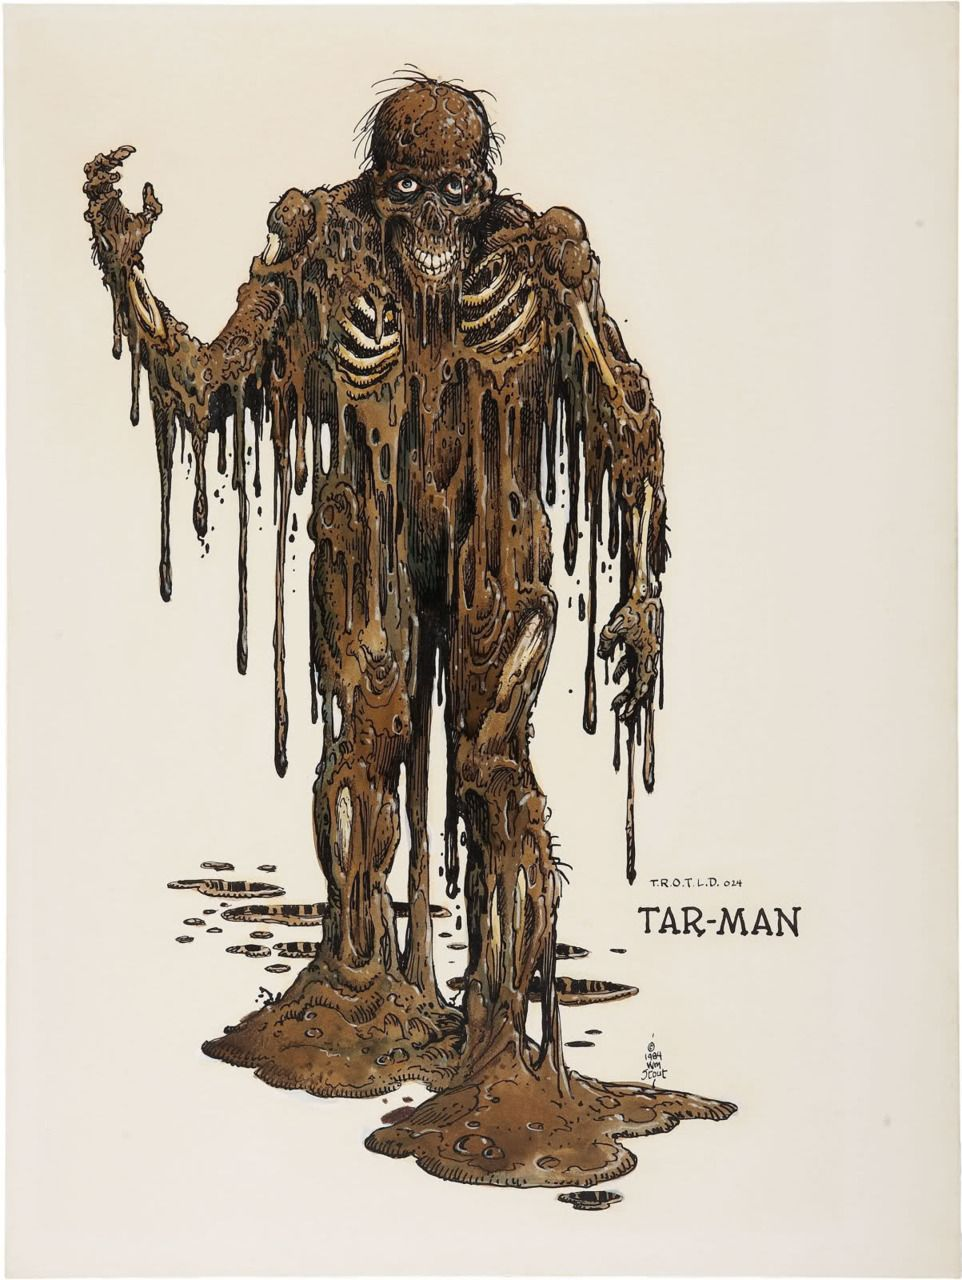 Tar-man concept art for Return of the Living Dead.